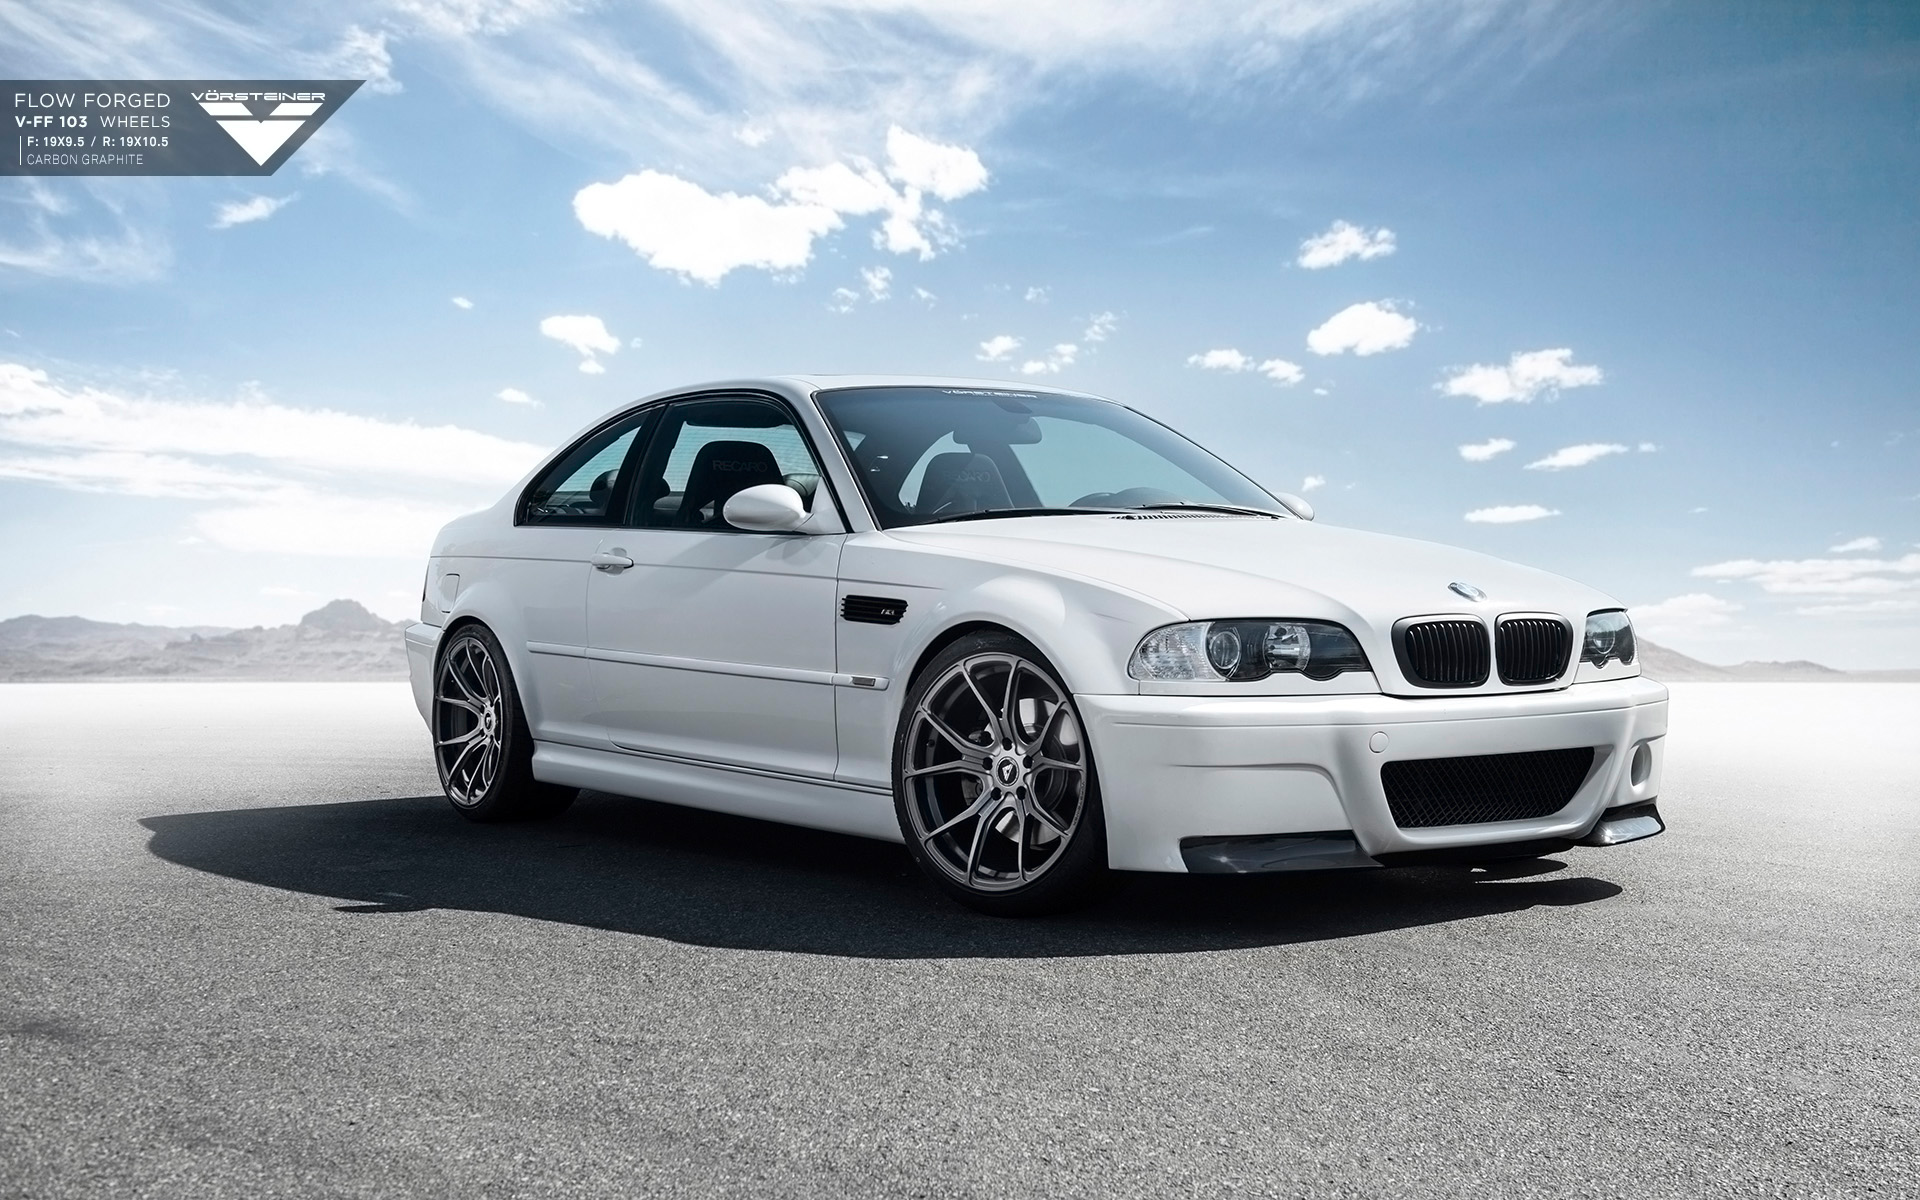 Vorsteiner BMW E46 M3 Wallpaper | HD Car Wallpapers | ID #5859